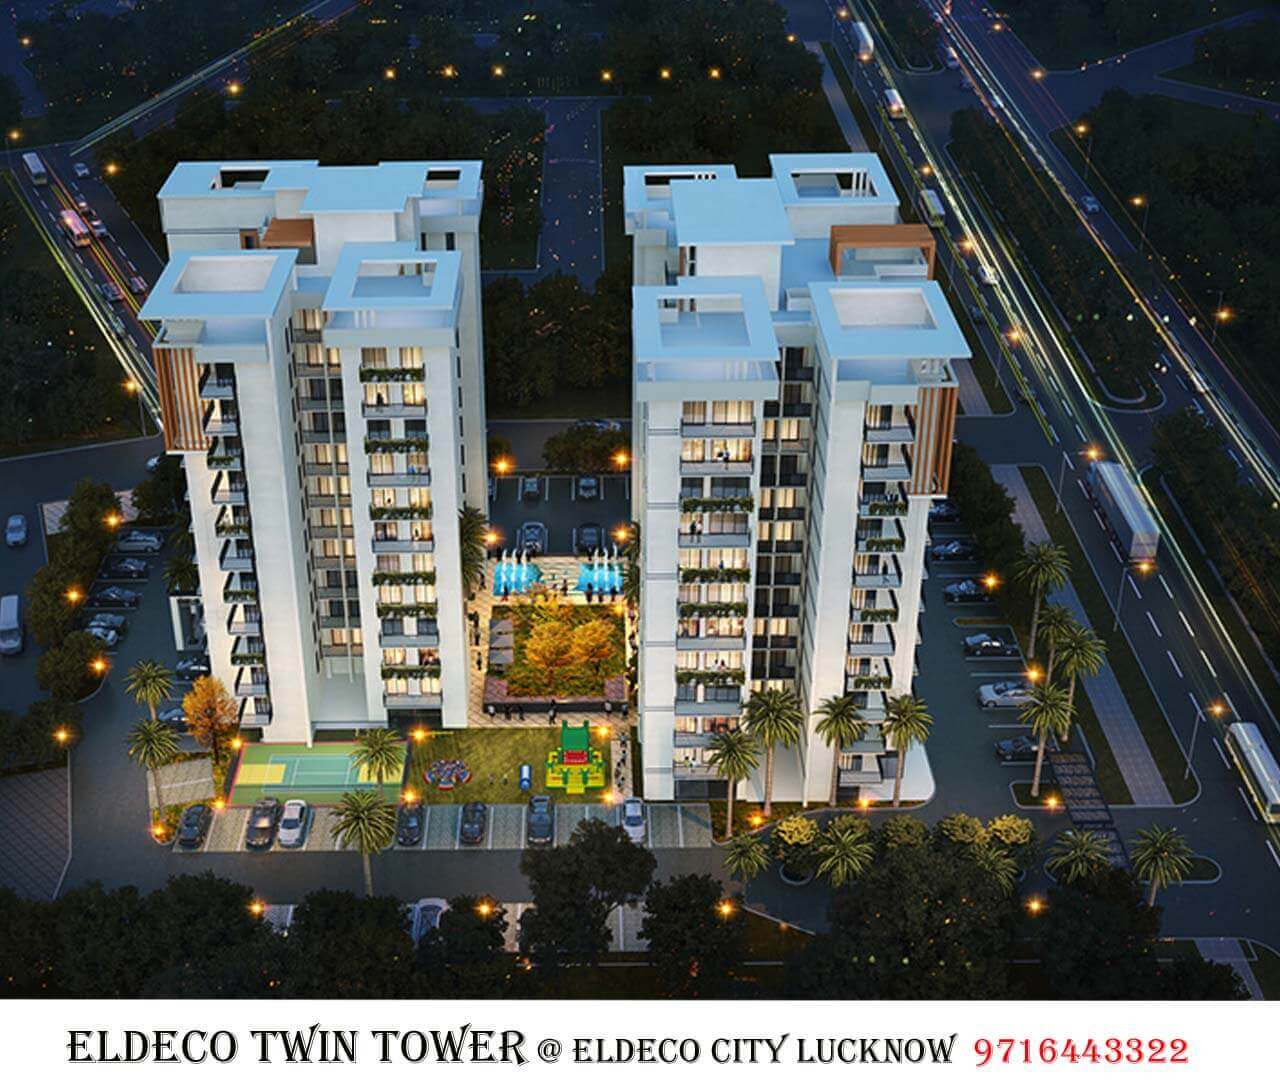 Night view of Eldeco Twin Tower lucknow